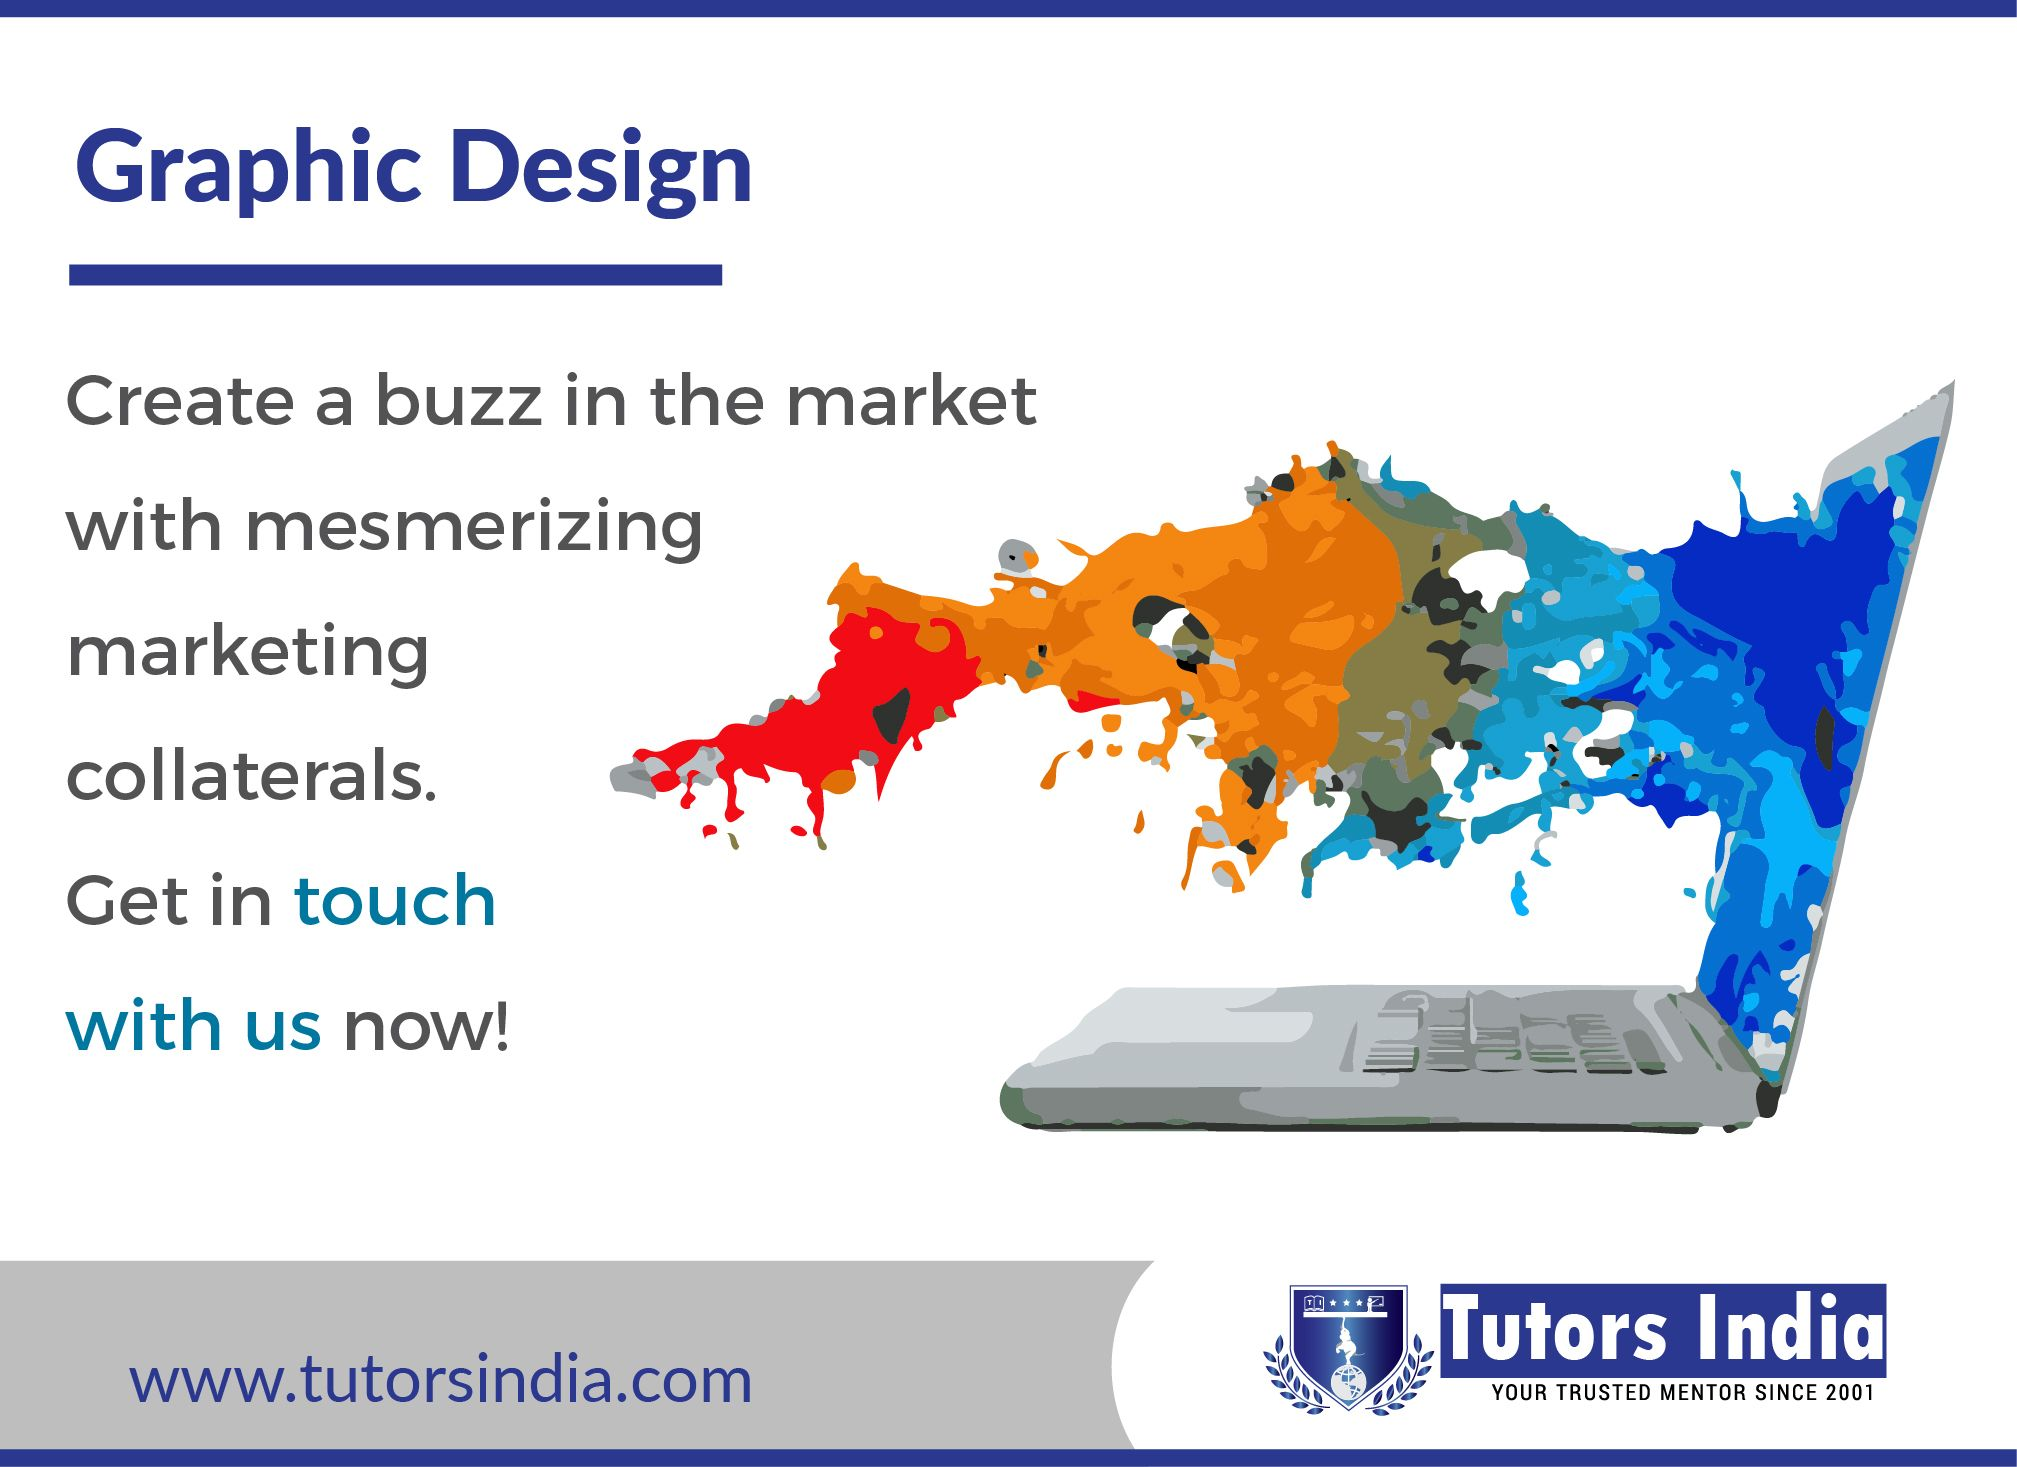 Academic writing help services india